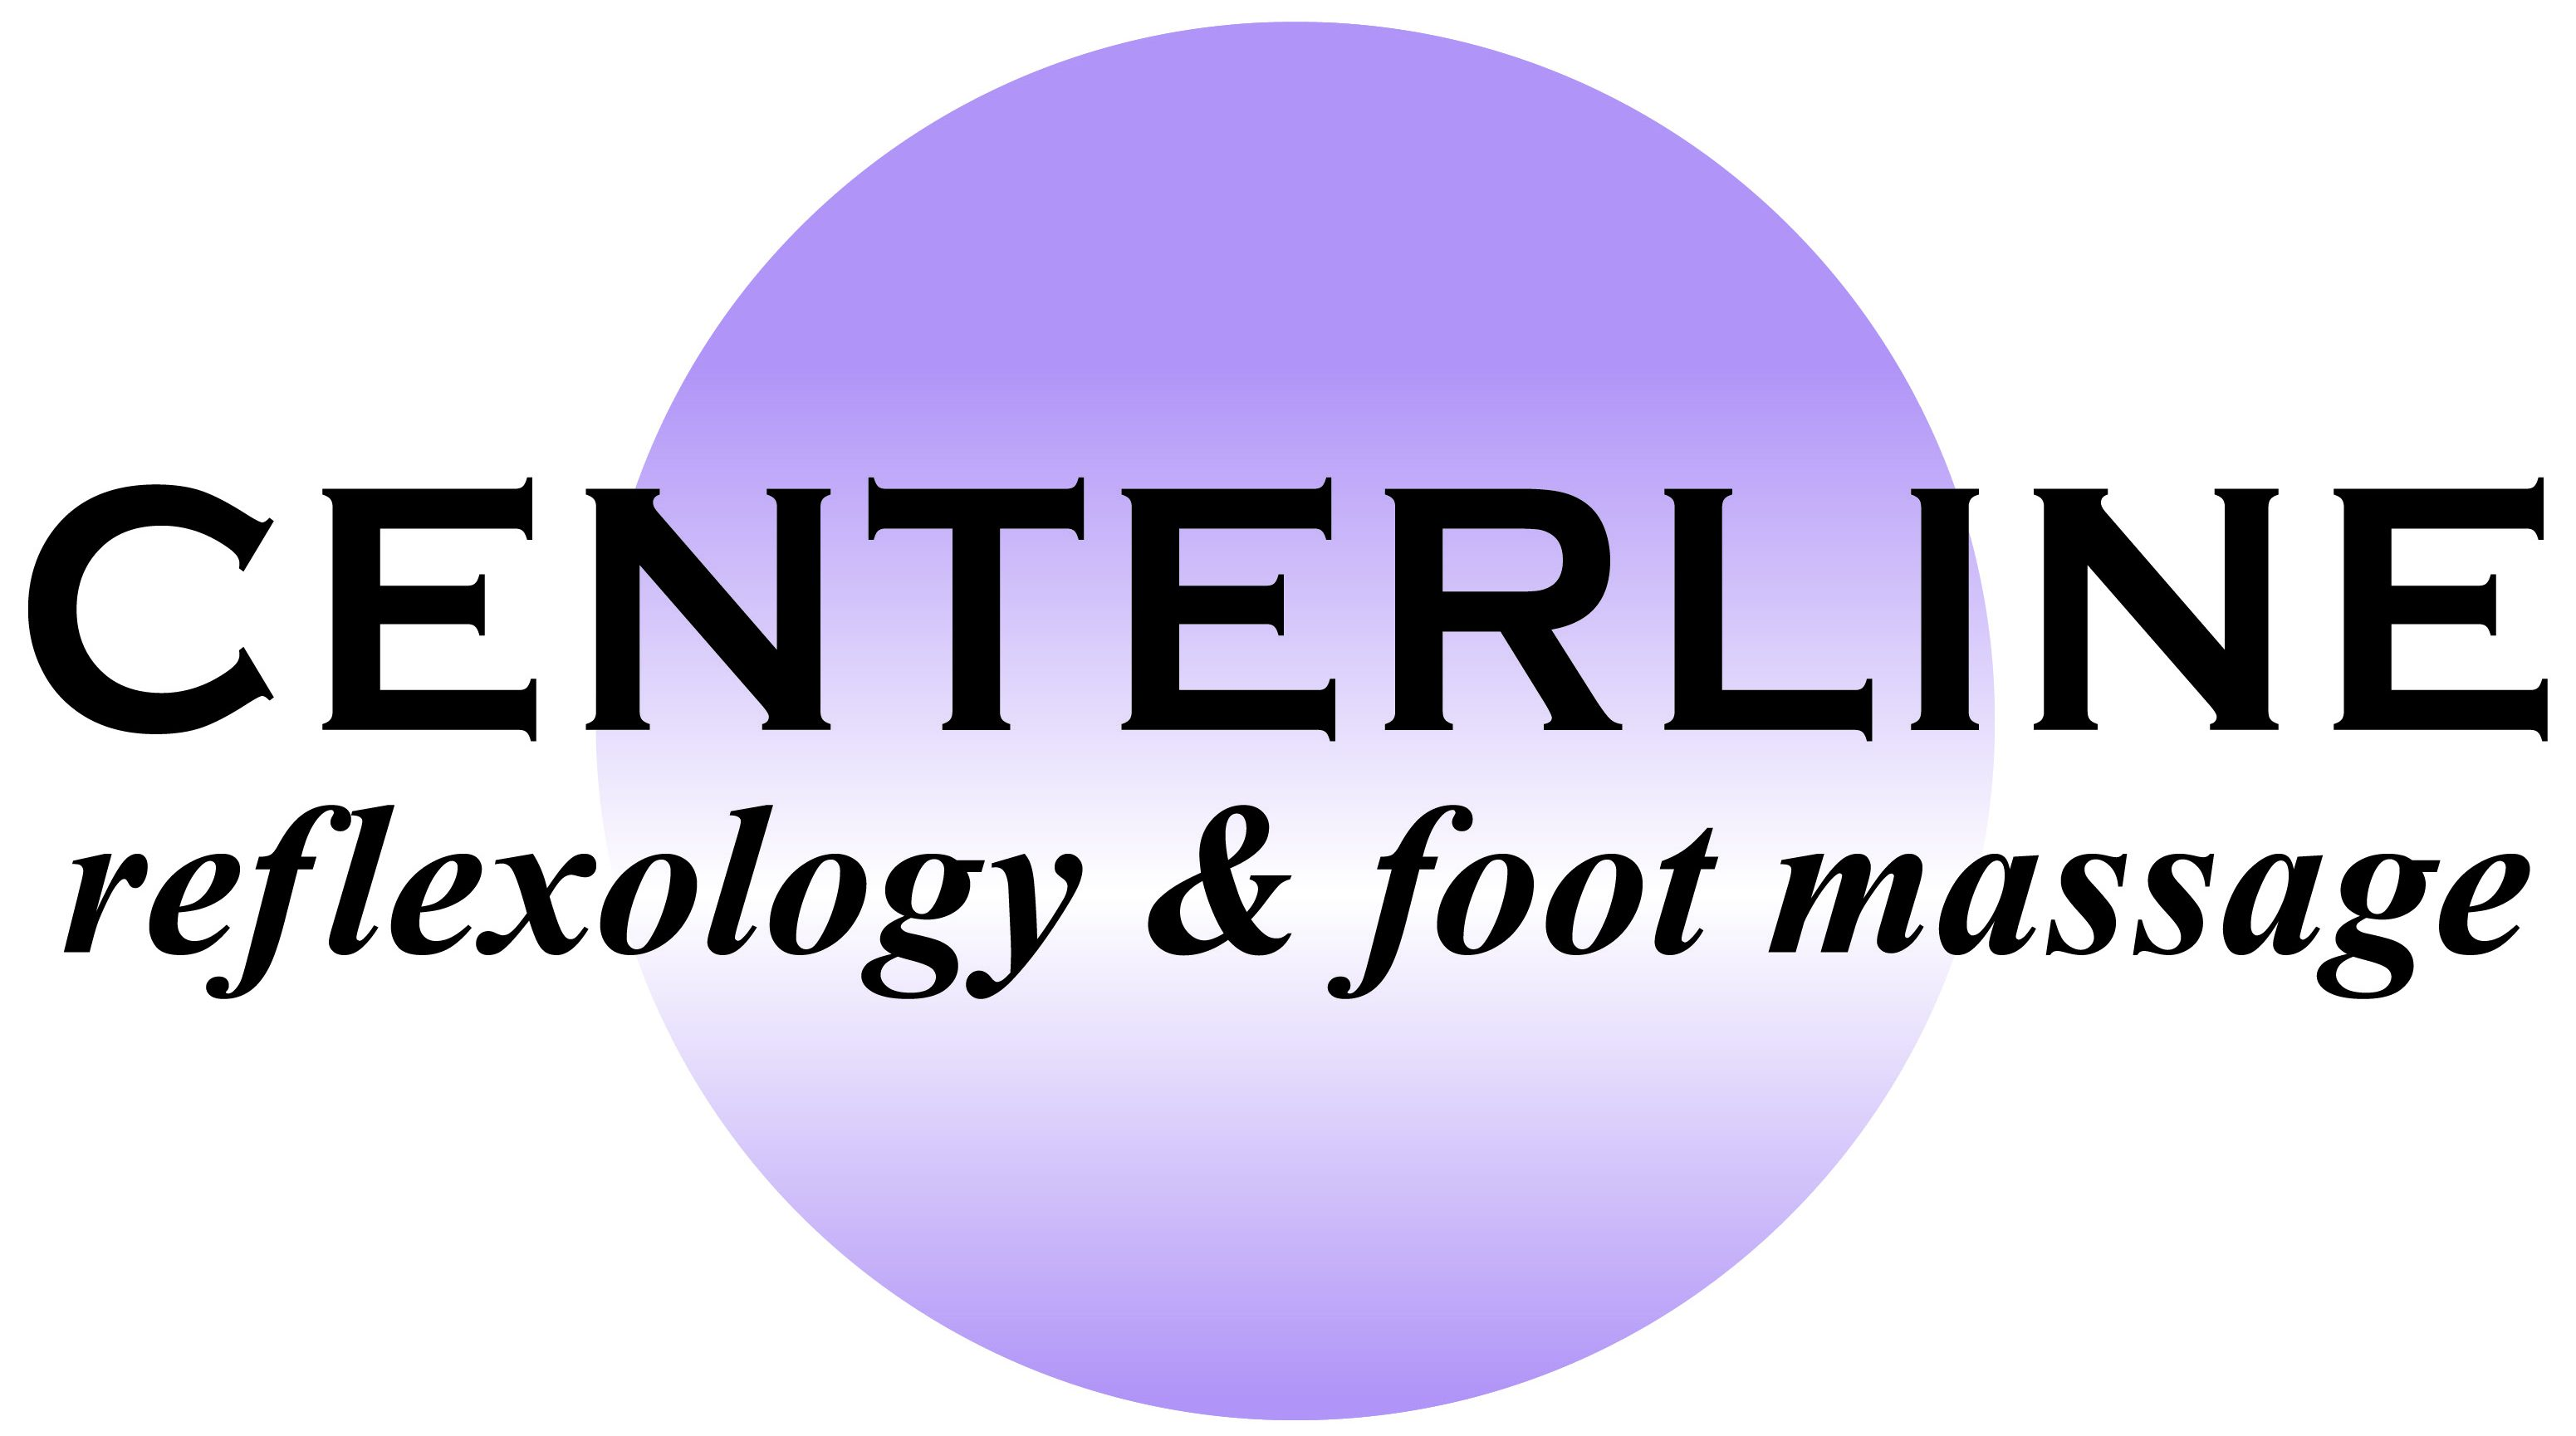 Centerline reflexology